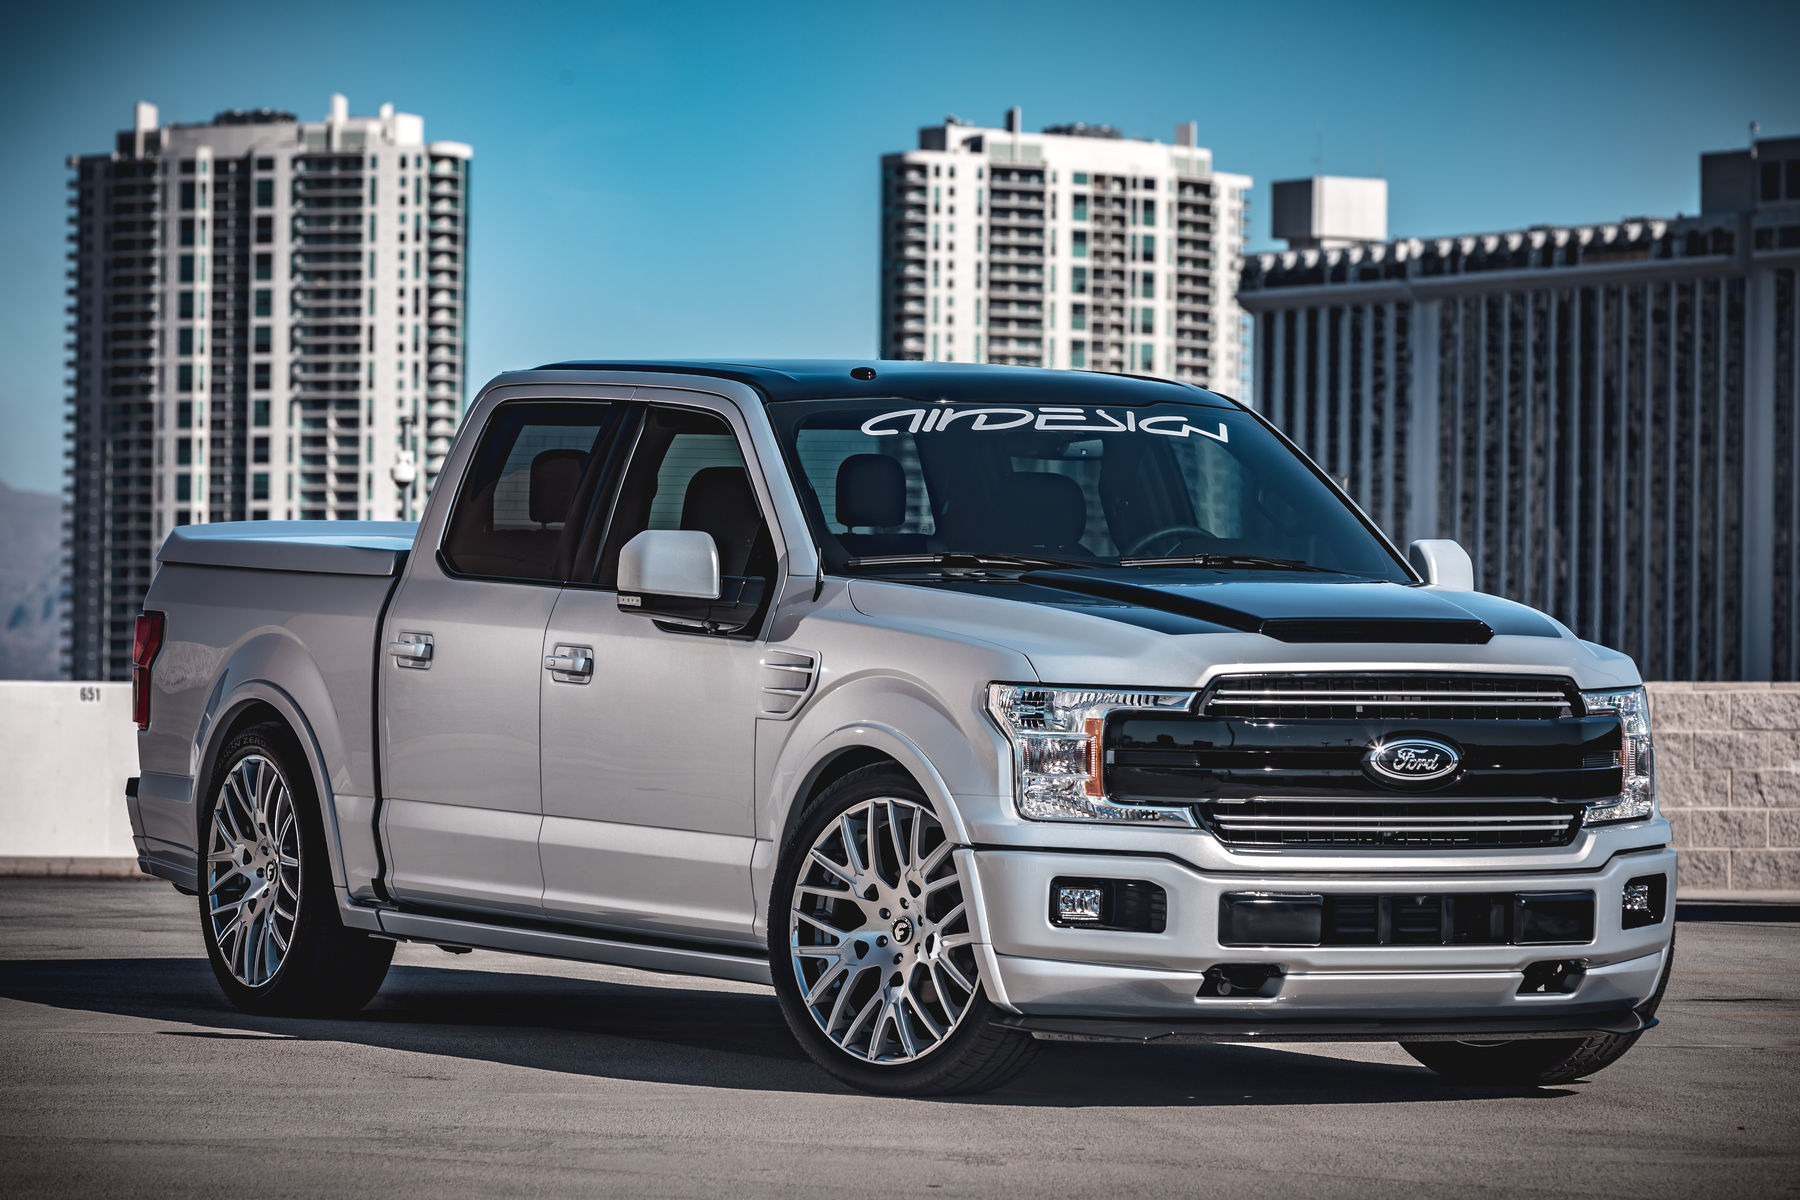 2018 Ford F-150 Lariat SuperCrew by AirDesign - Featuring